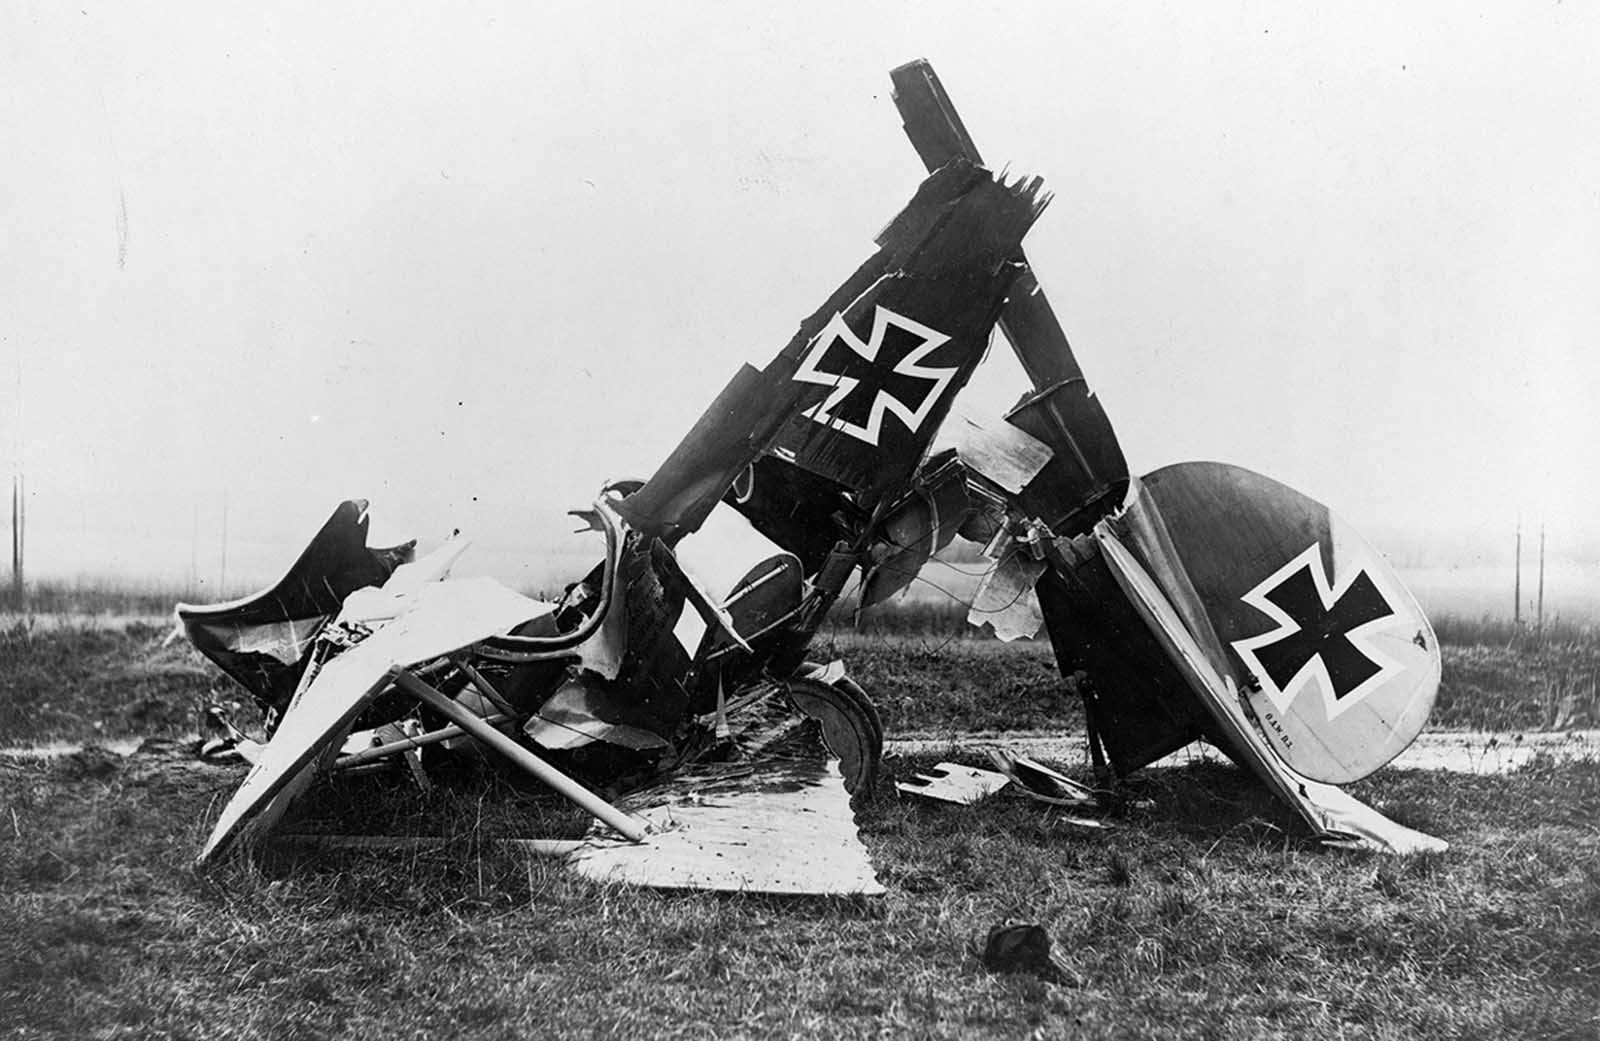 Wreckage of a German Albatross D. III fighter biplane.